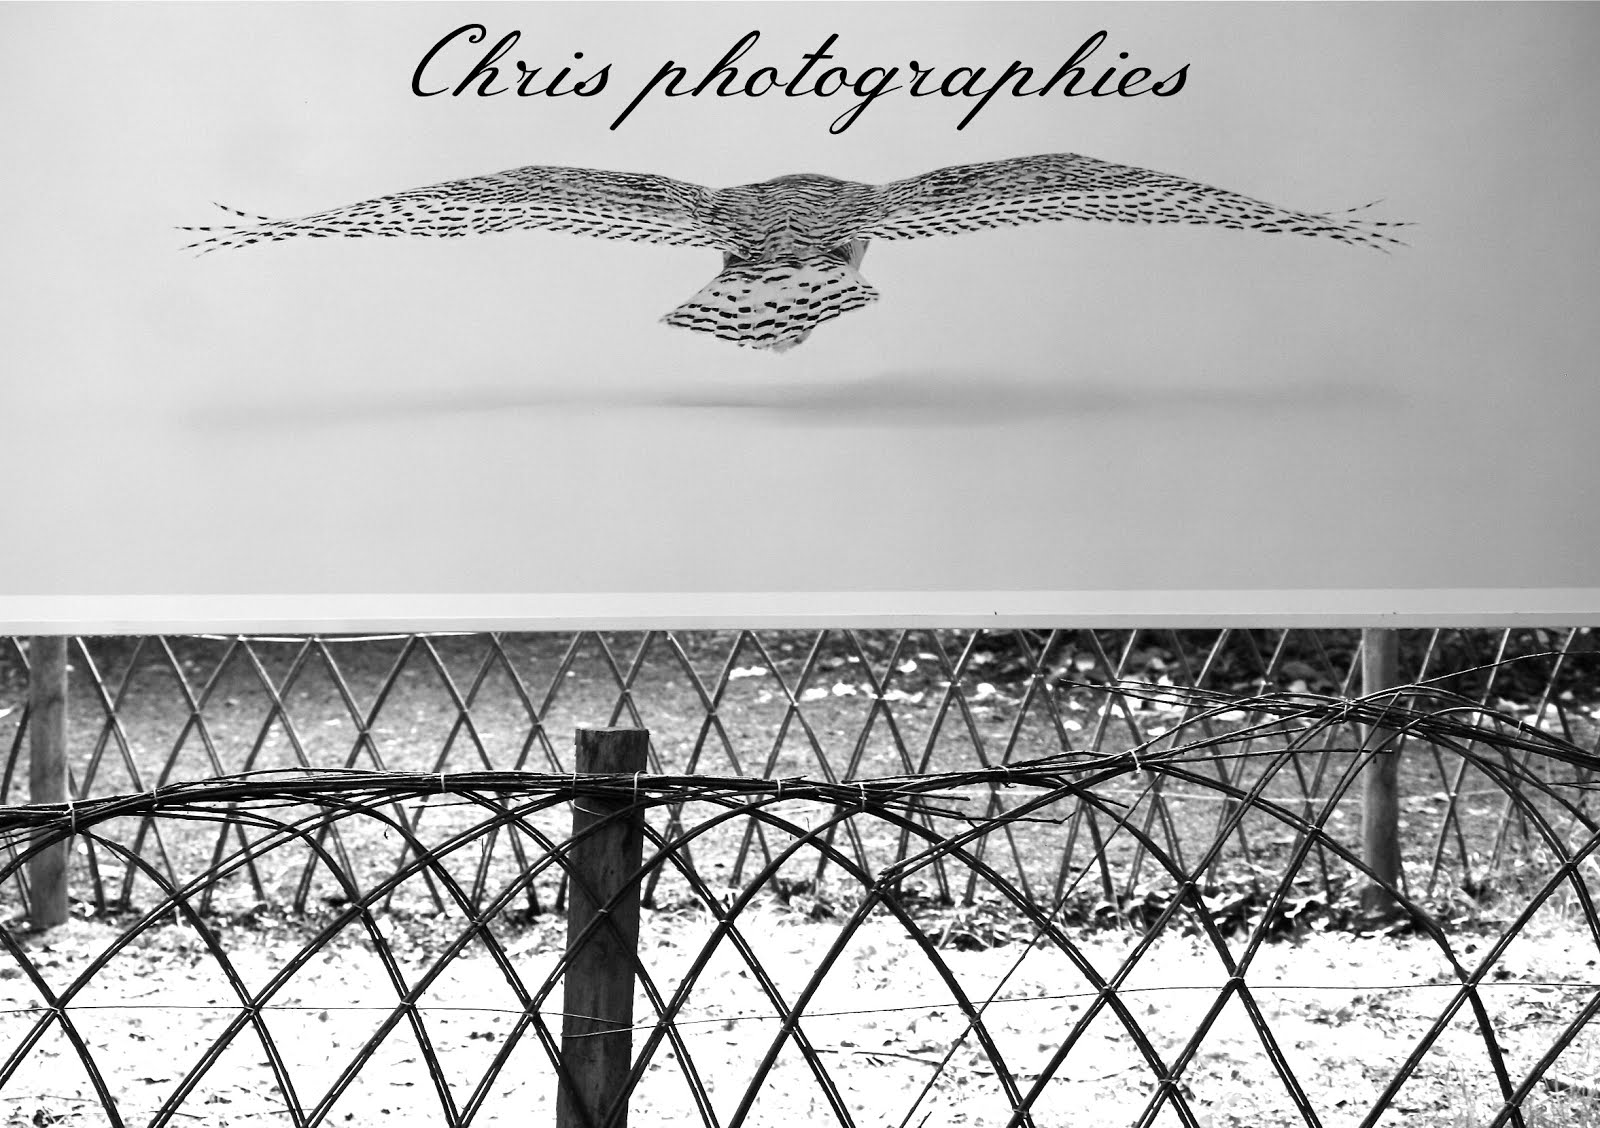 Chris photographies